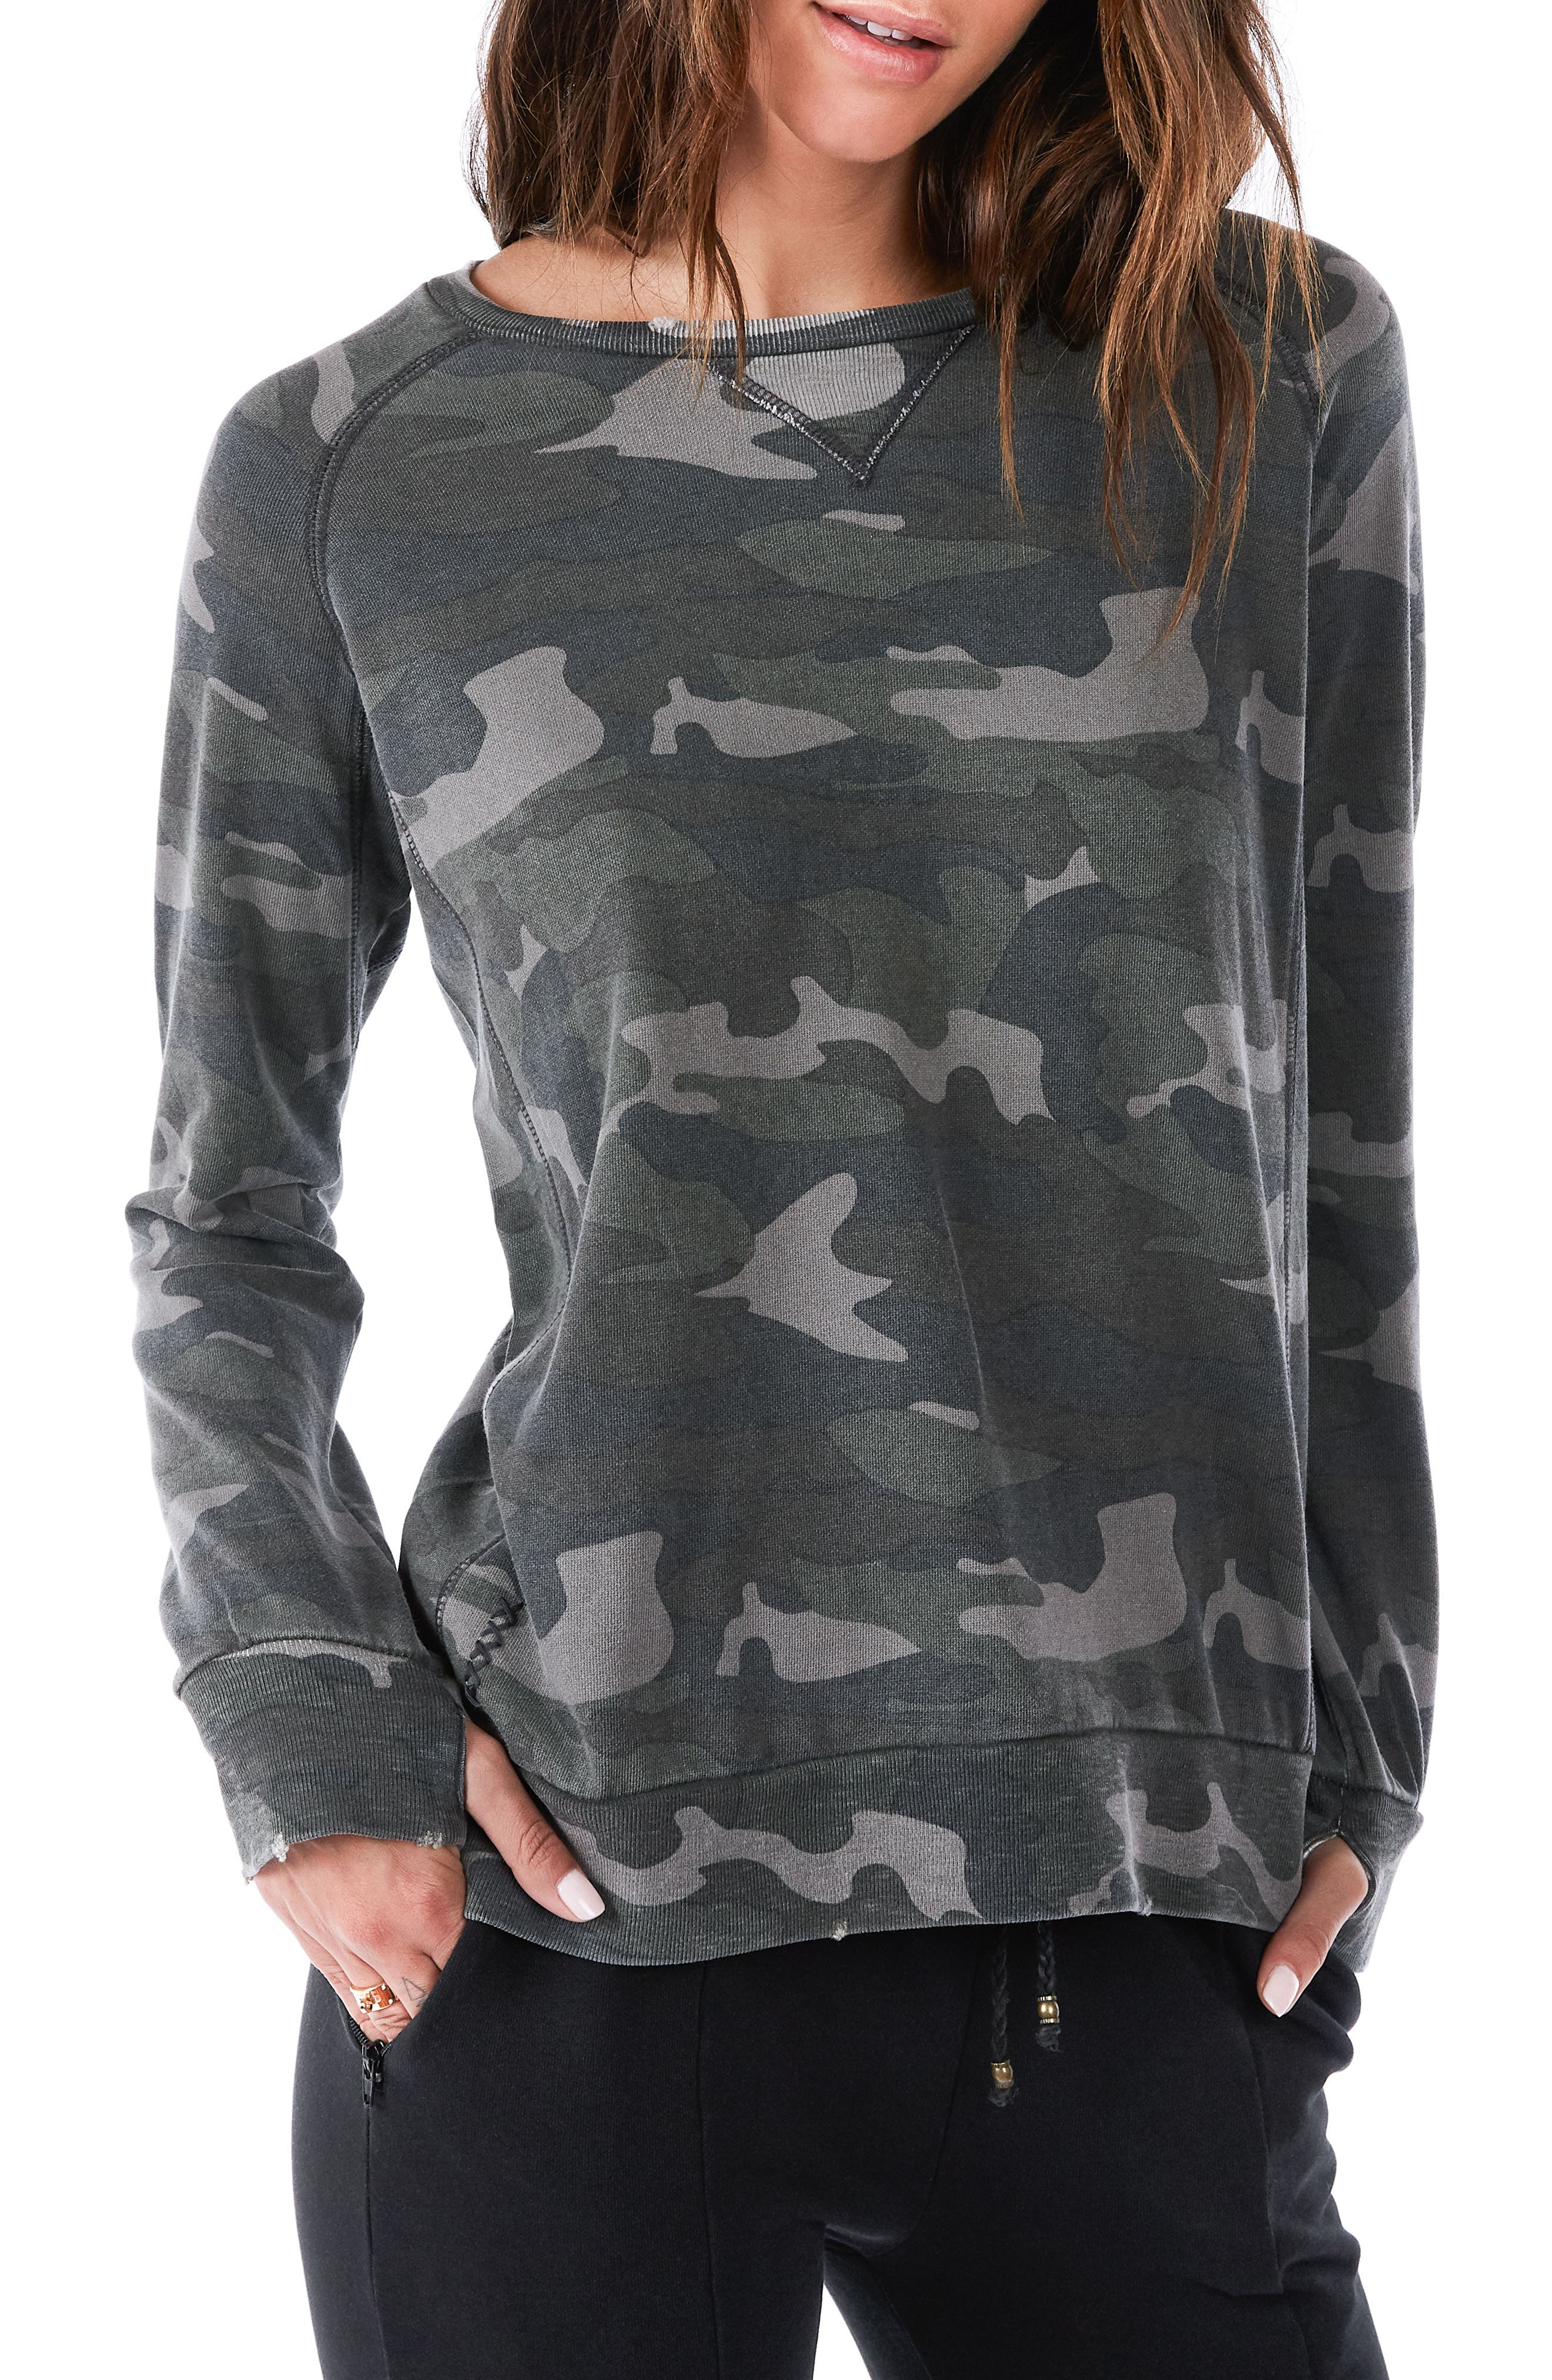 Distressed Camo Sweatshirt,                             Main thumbnail 1, color,                             Army Camo